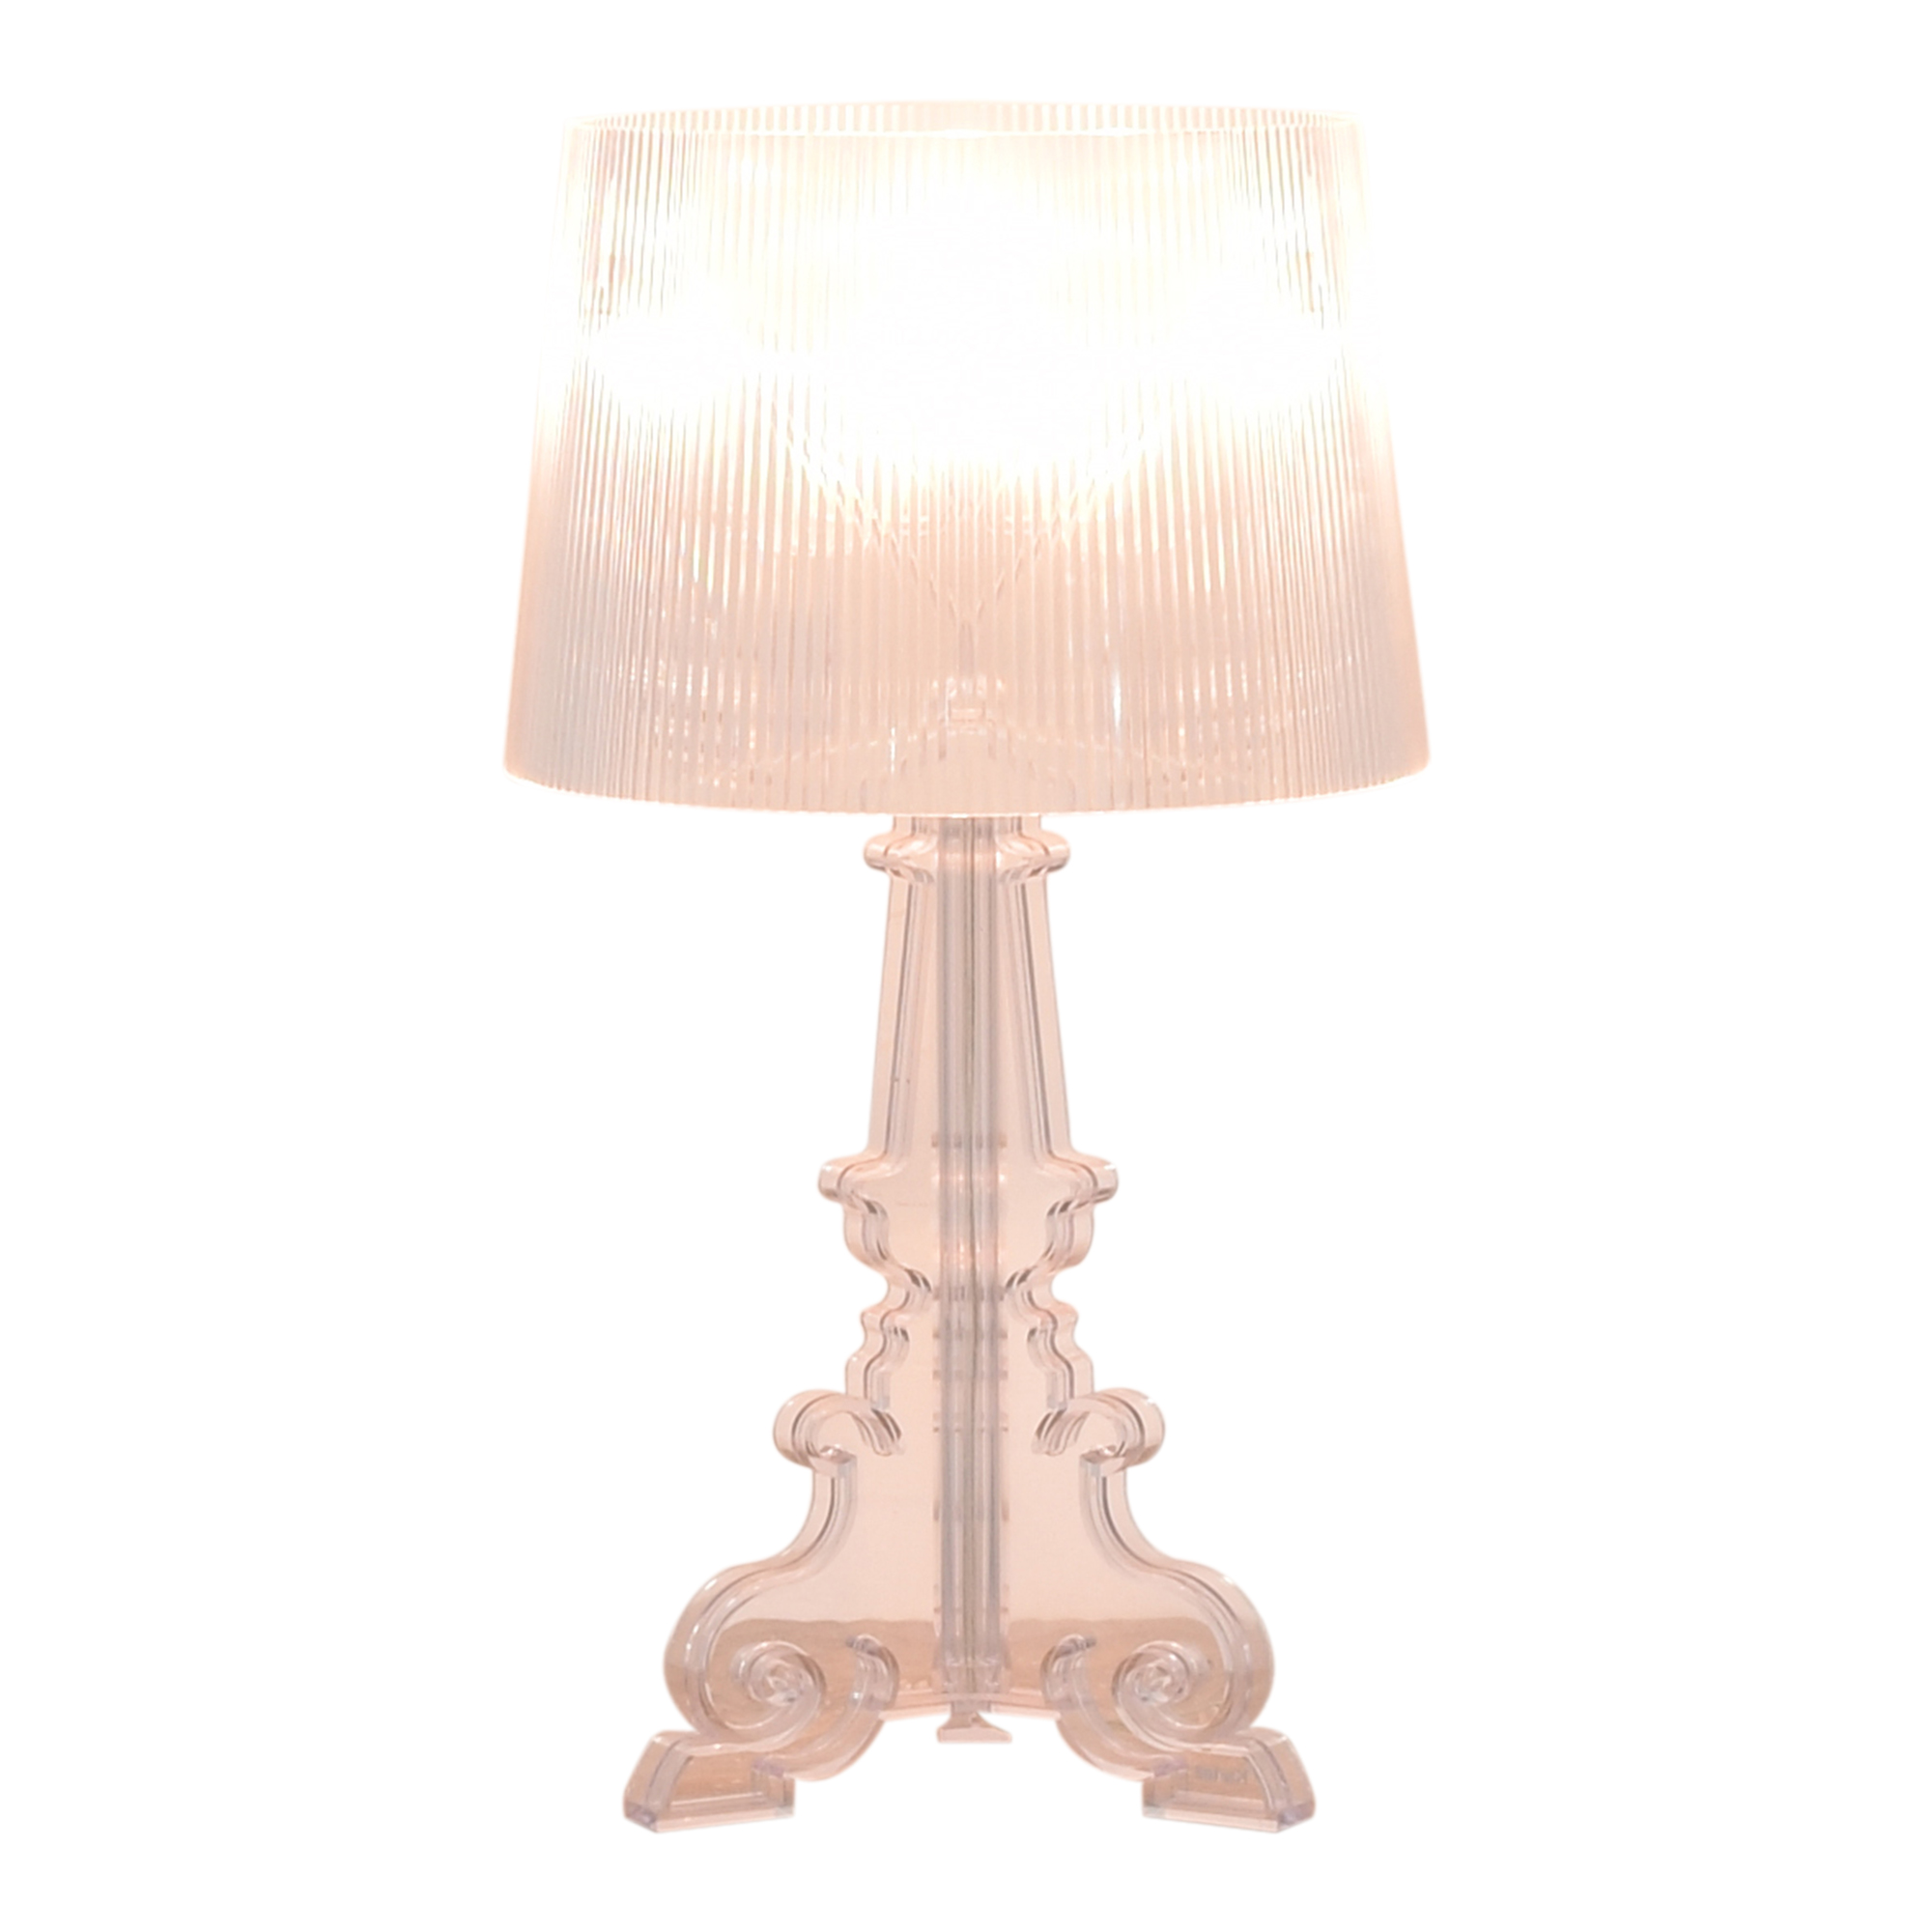 Kartell Kartell Bourgie Table Lamp for sale